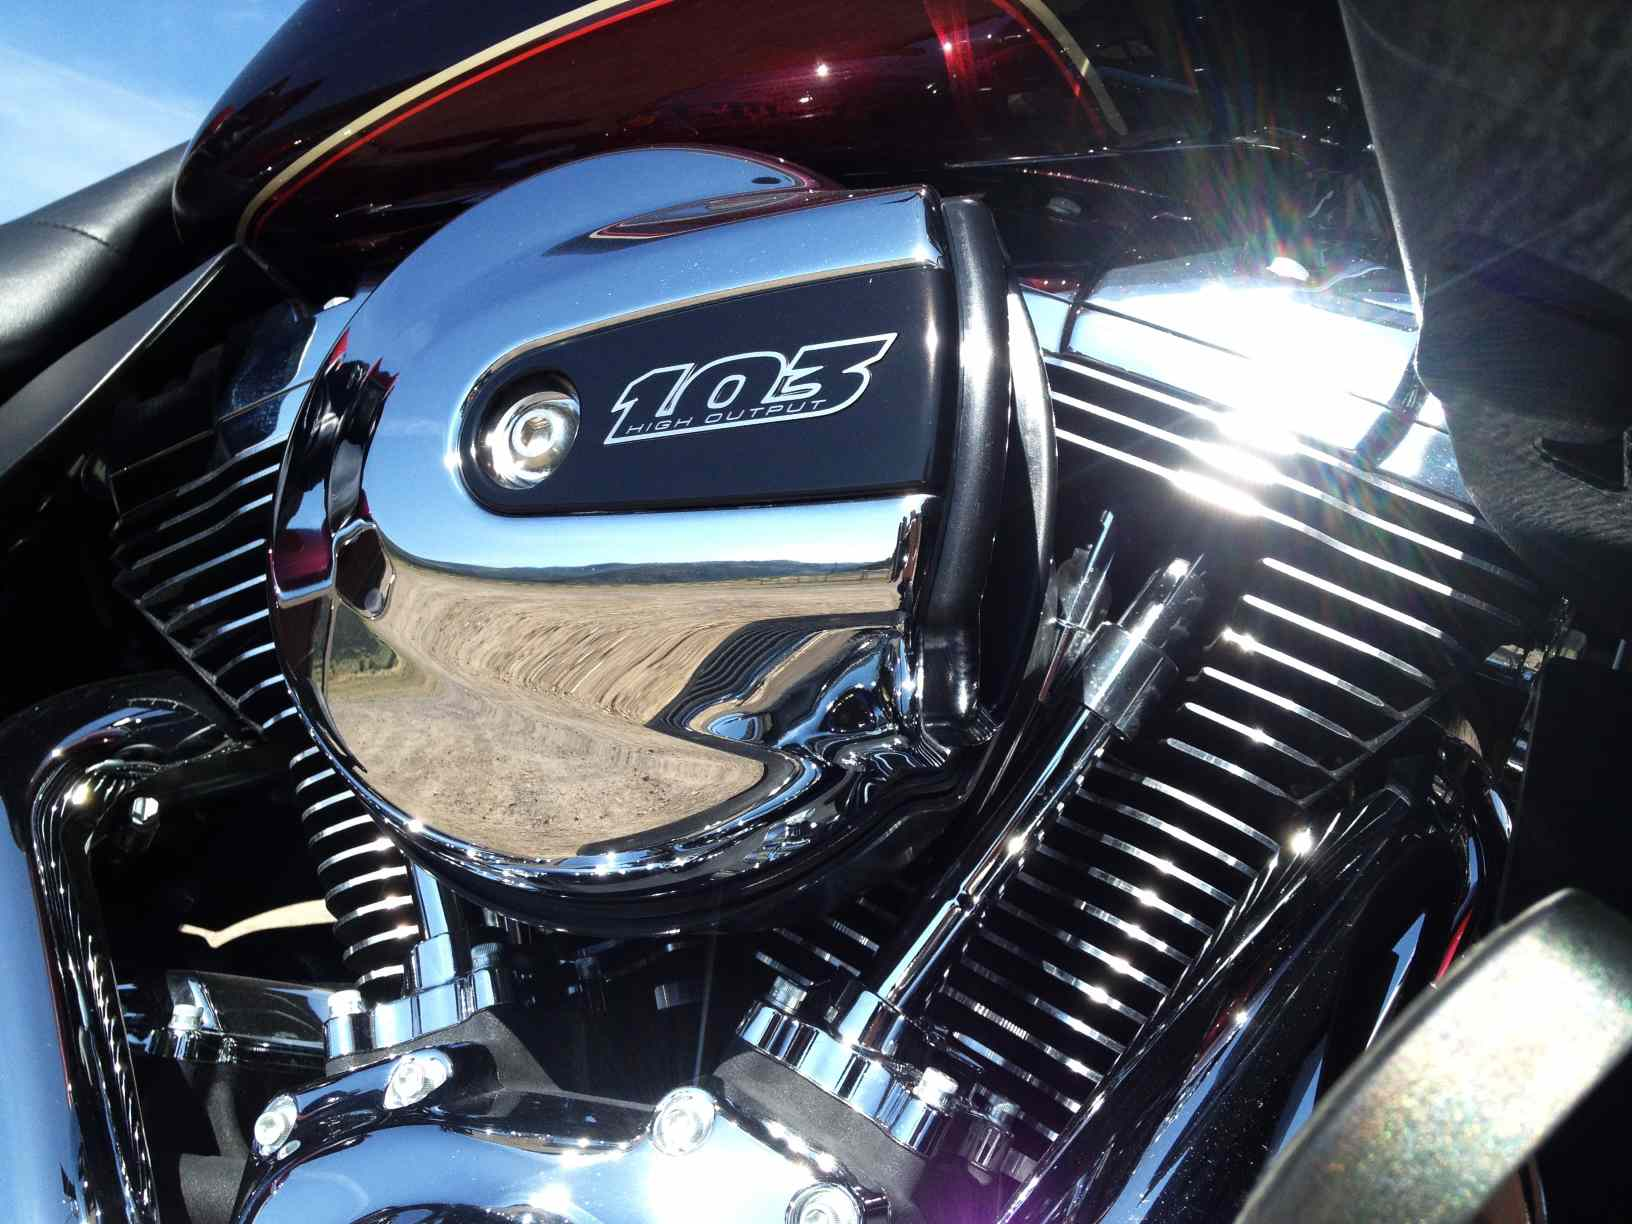 Liquid Cooled 2014 Harley-Davidsons: 6 Things to Know